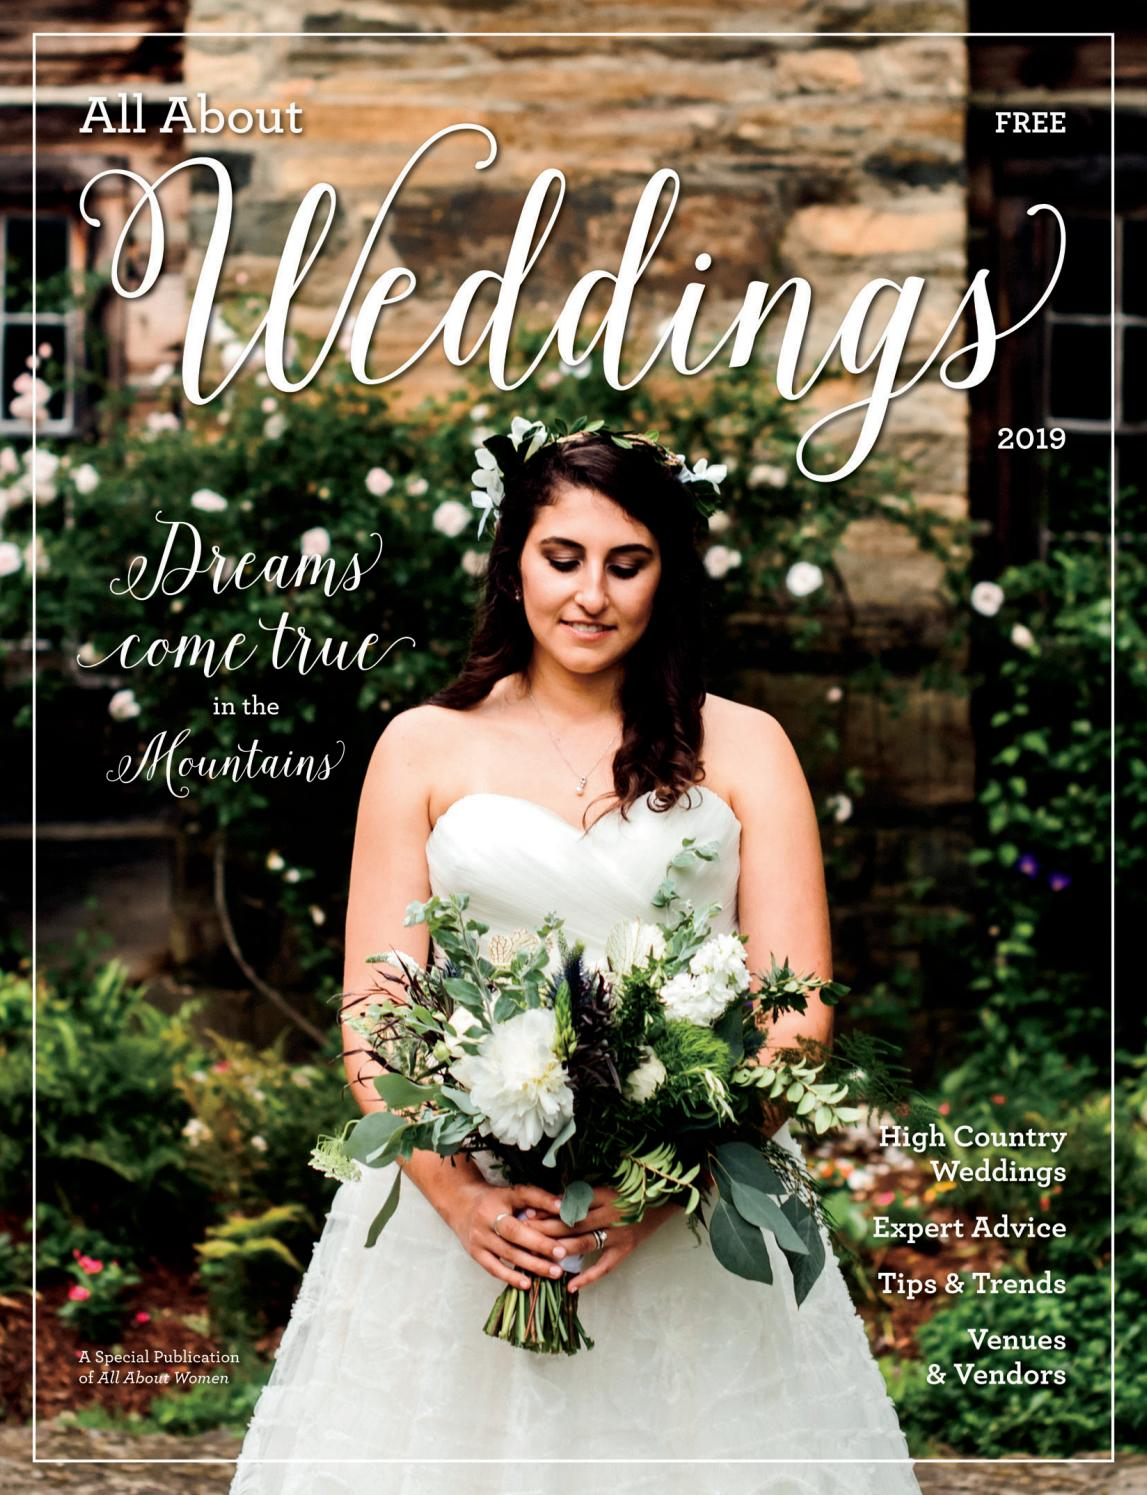 6a1673e0059 All About Weddings 2019 by Mountain Times Publications - issuu